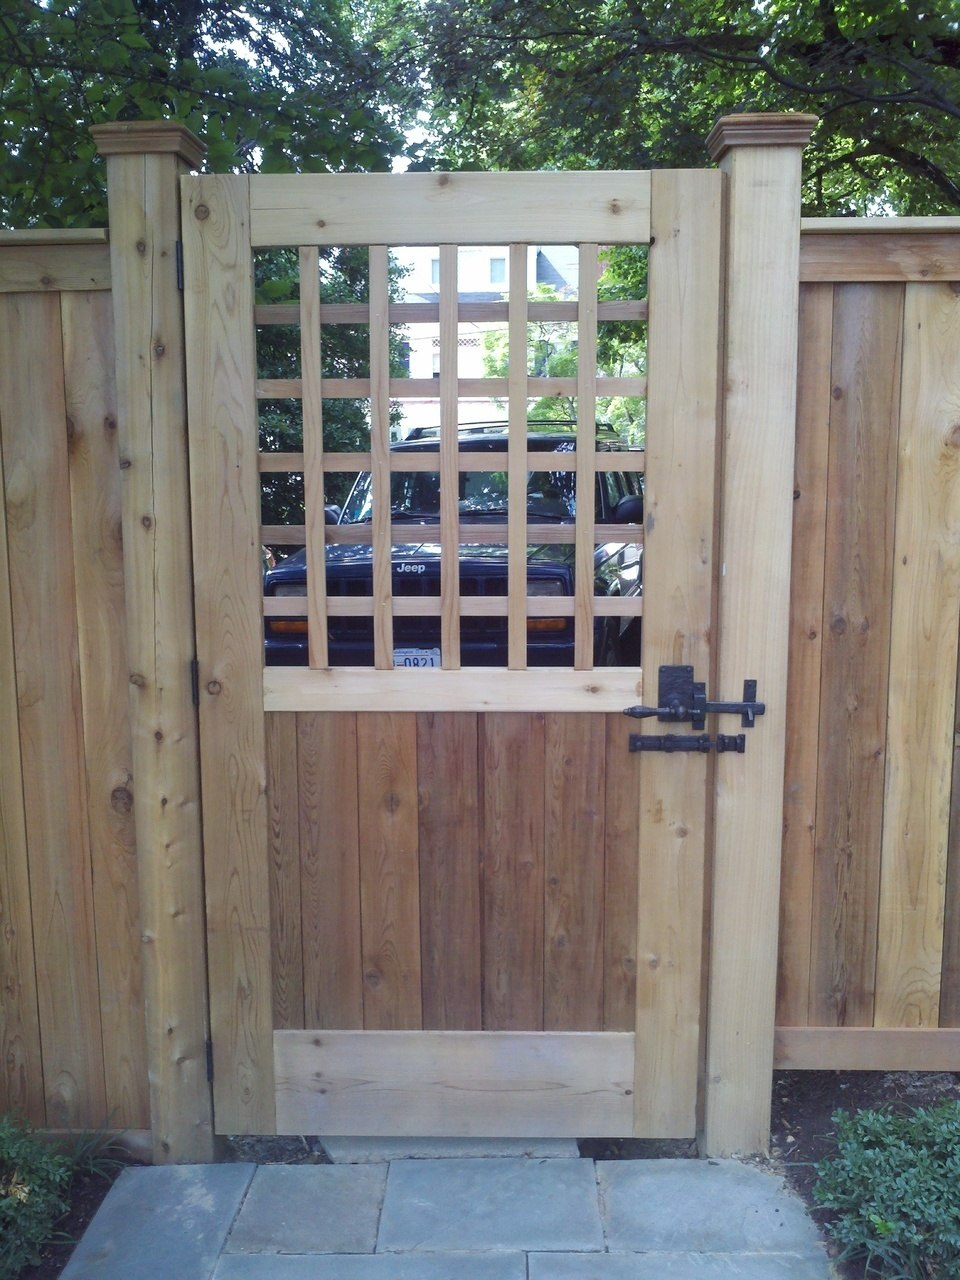 Dark Bronze Lever Latch with Rounded Handle on wood gate